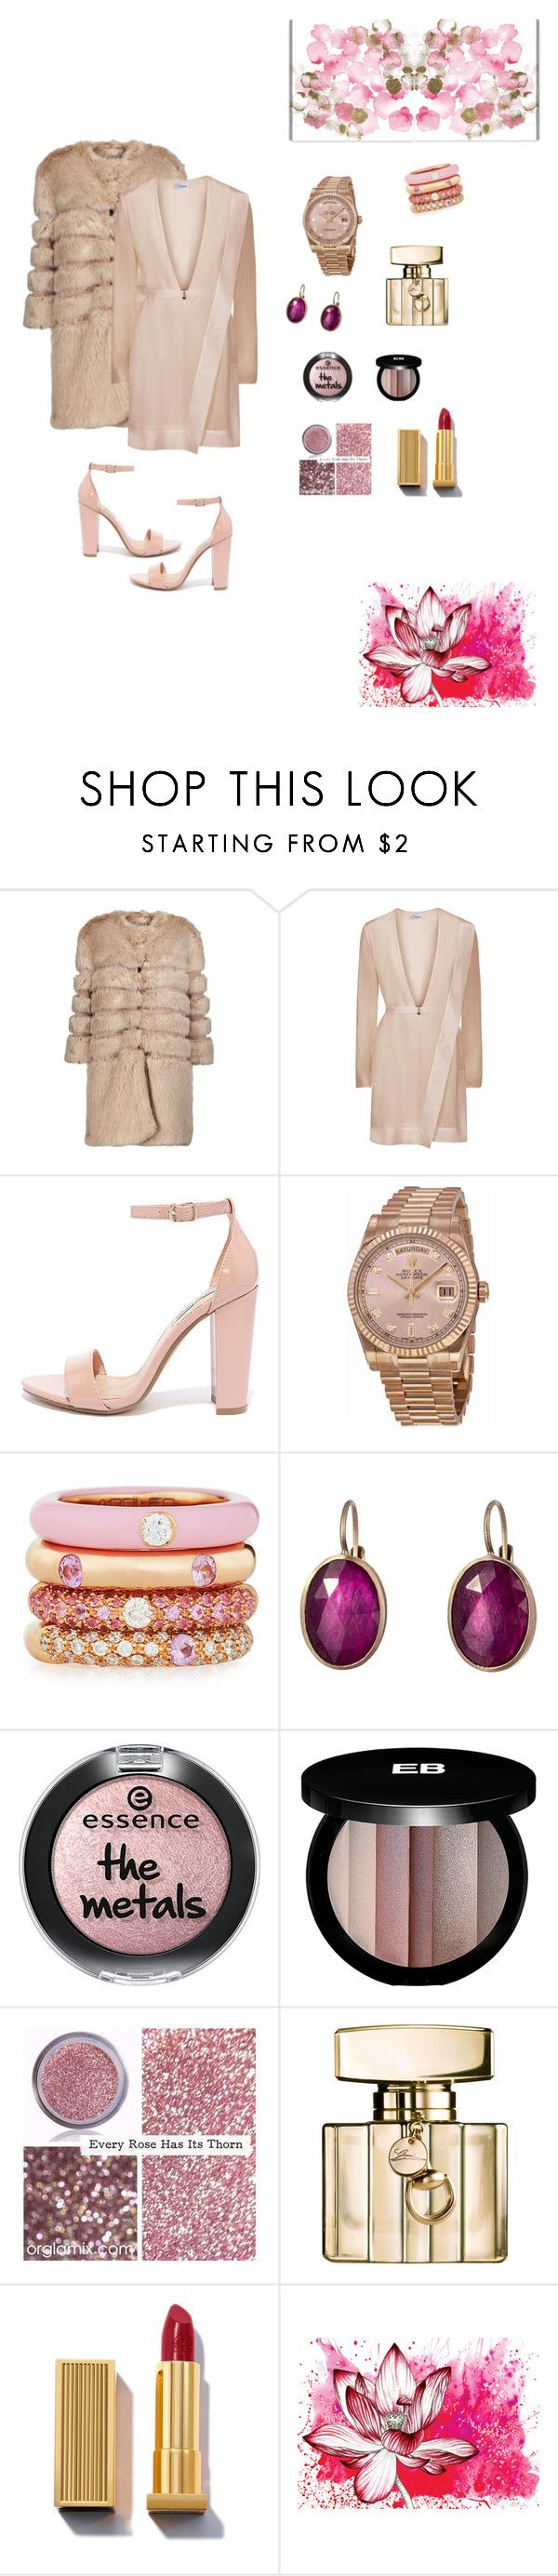 """#winterwedding"" by joe-khulan on Polyvore featuring AINEA, Steve Madden, Rolex, Adolfo Courrier, Anaconda, Edward Bess, Gucci, Karuna and Oliver Gal Artist Co."